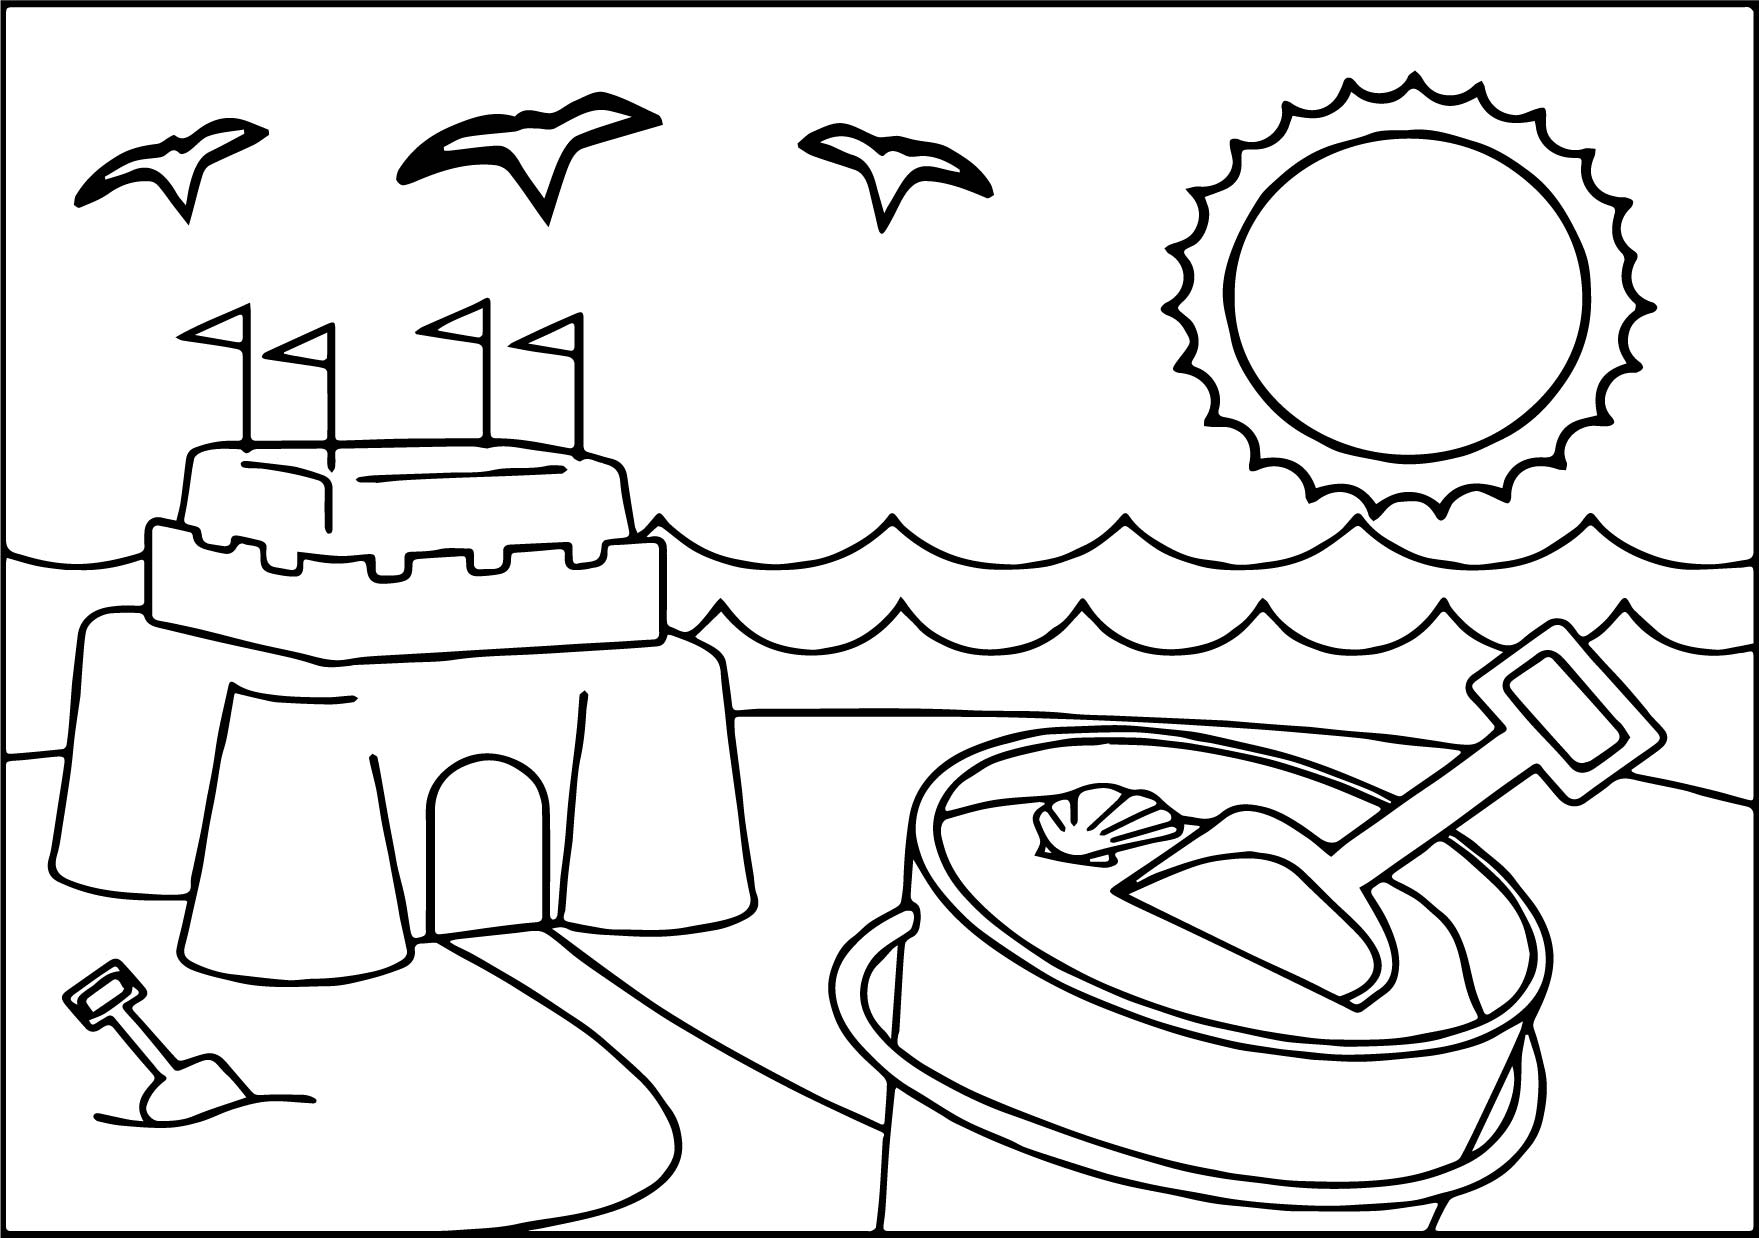 free kid coloring book pages - photo#19